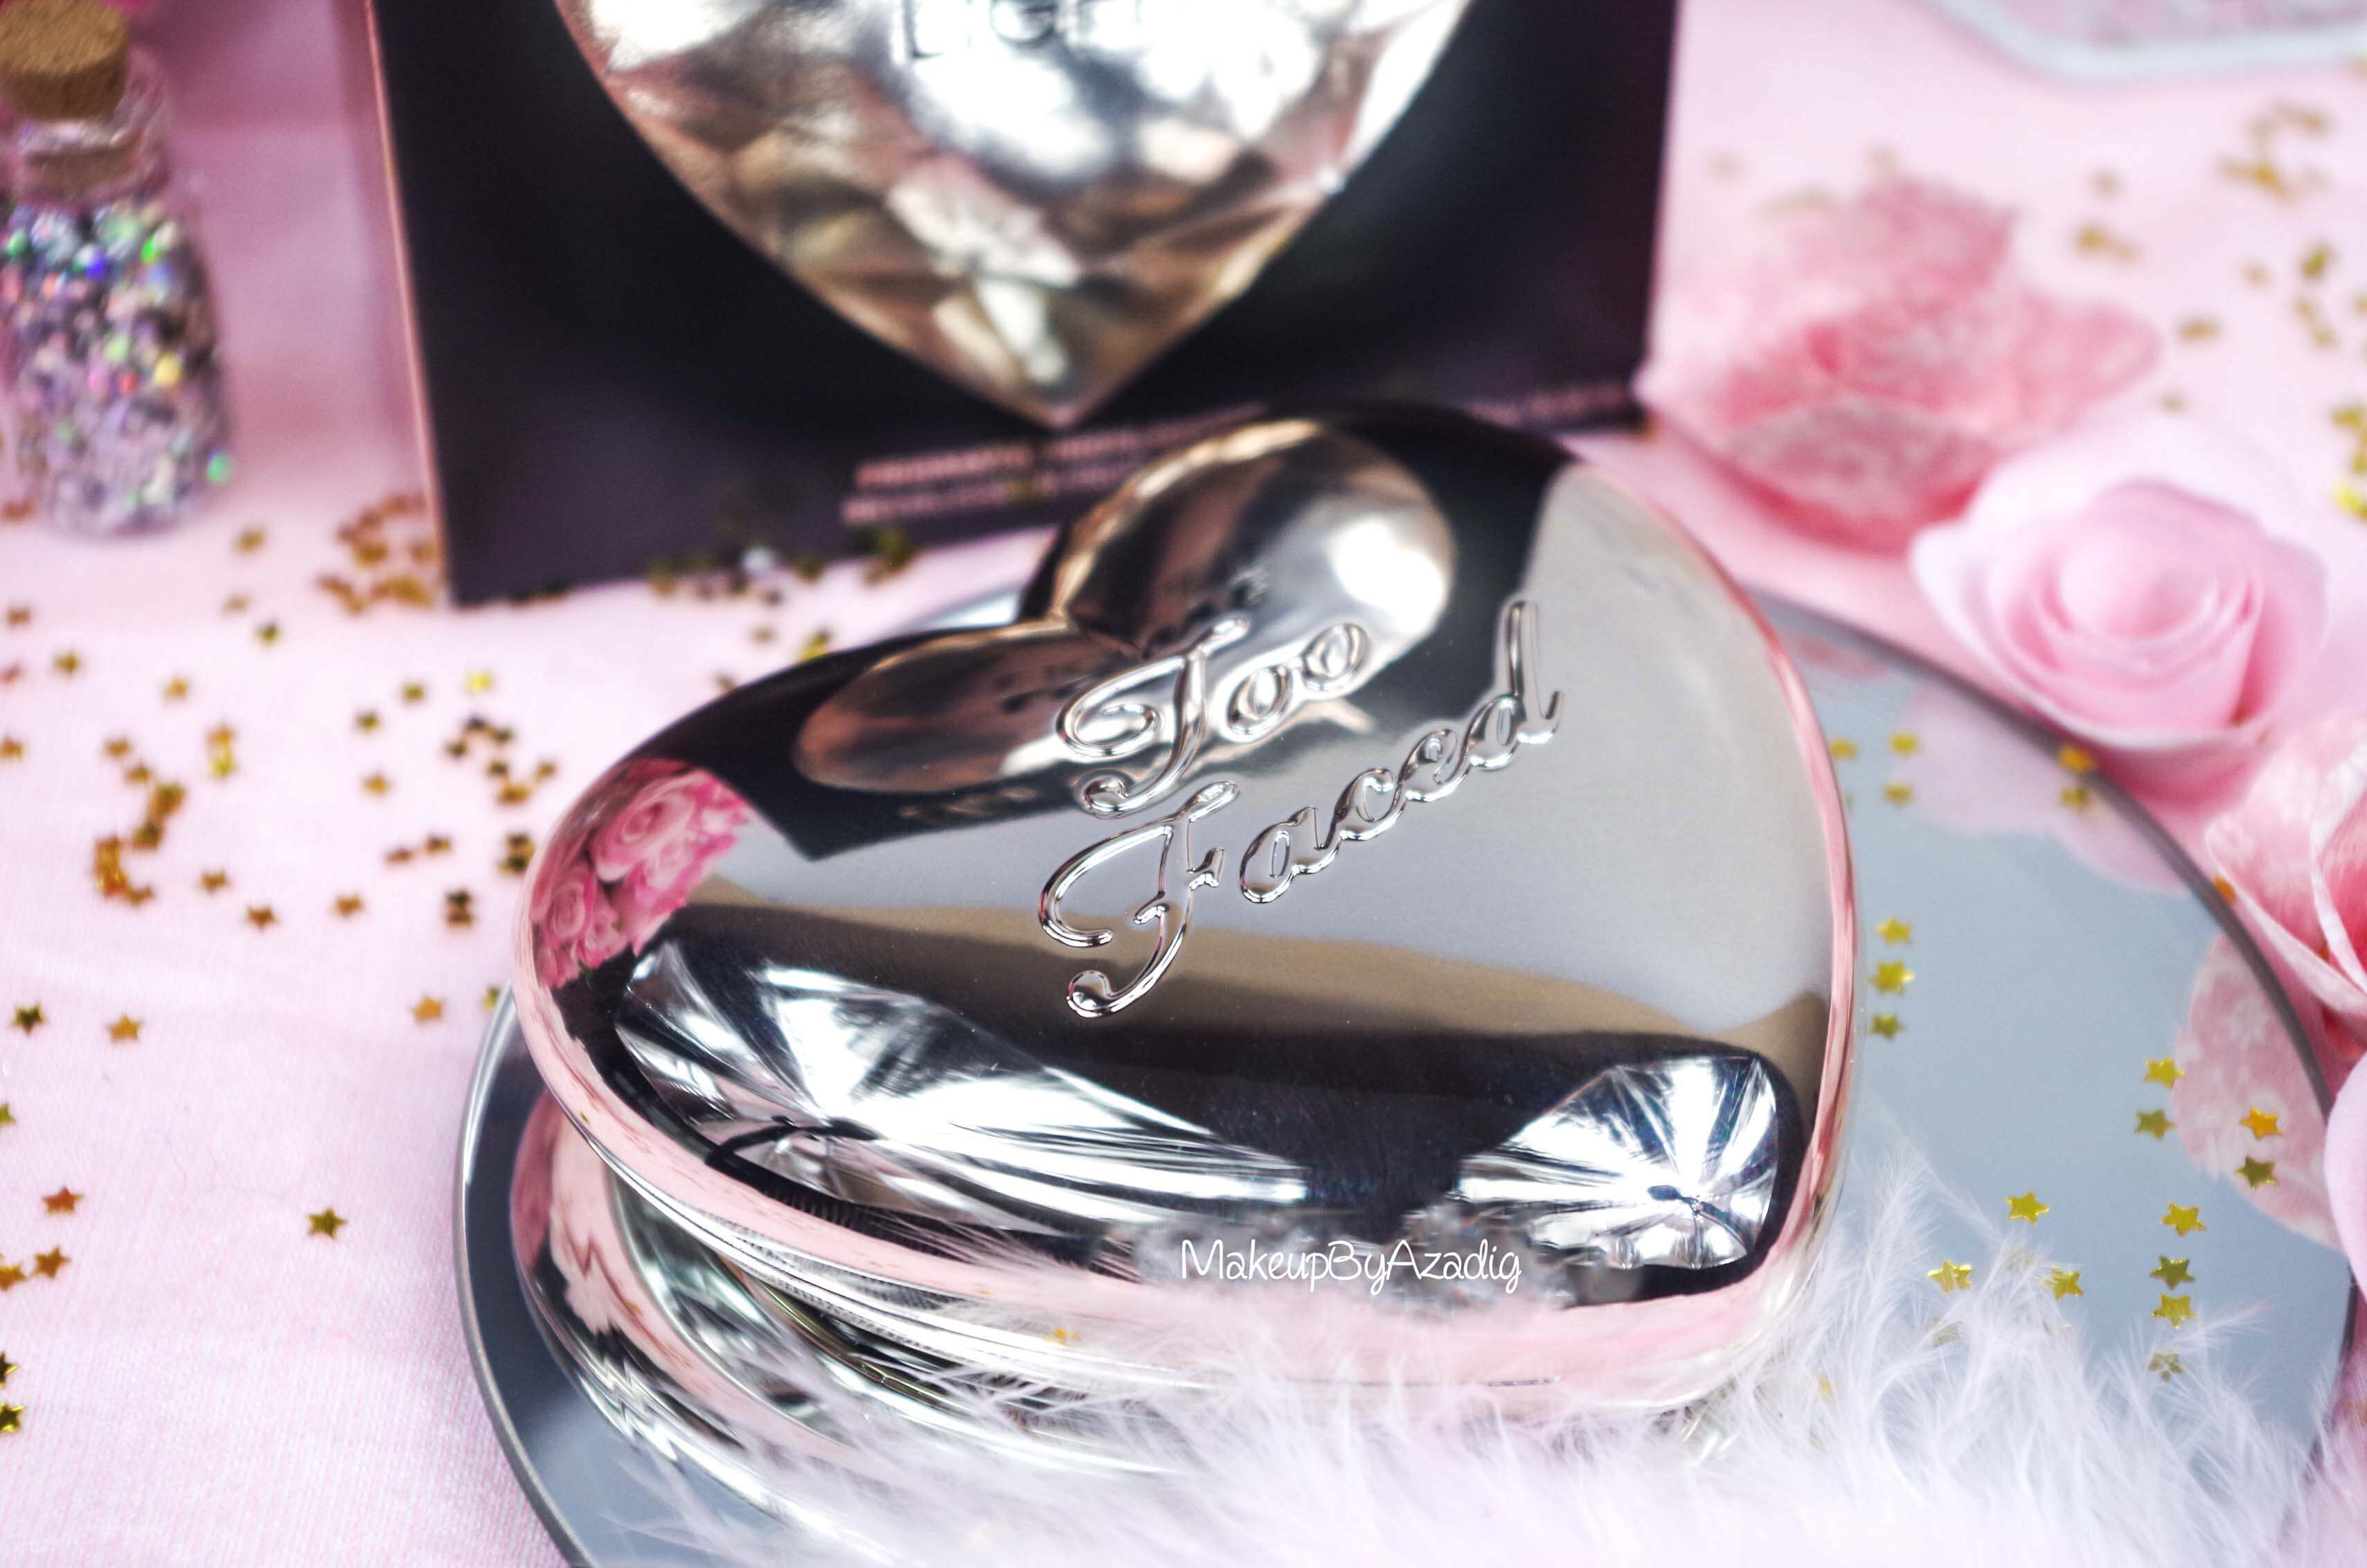 revue-review-highlighter-love-light-too-faced-coeur-avis-prix-sephora-makeupbyazadig-packaging